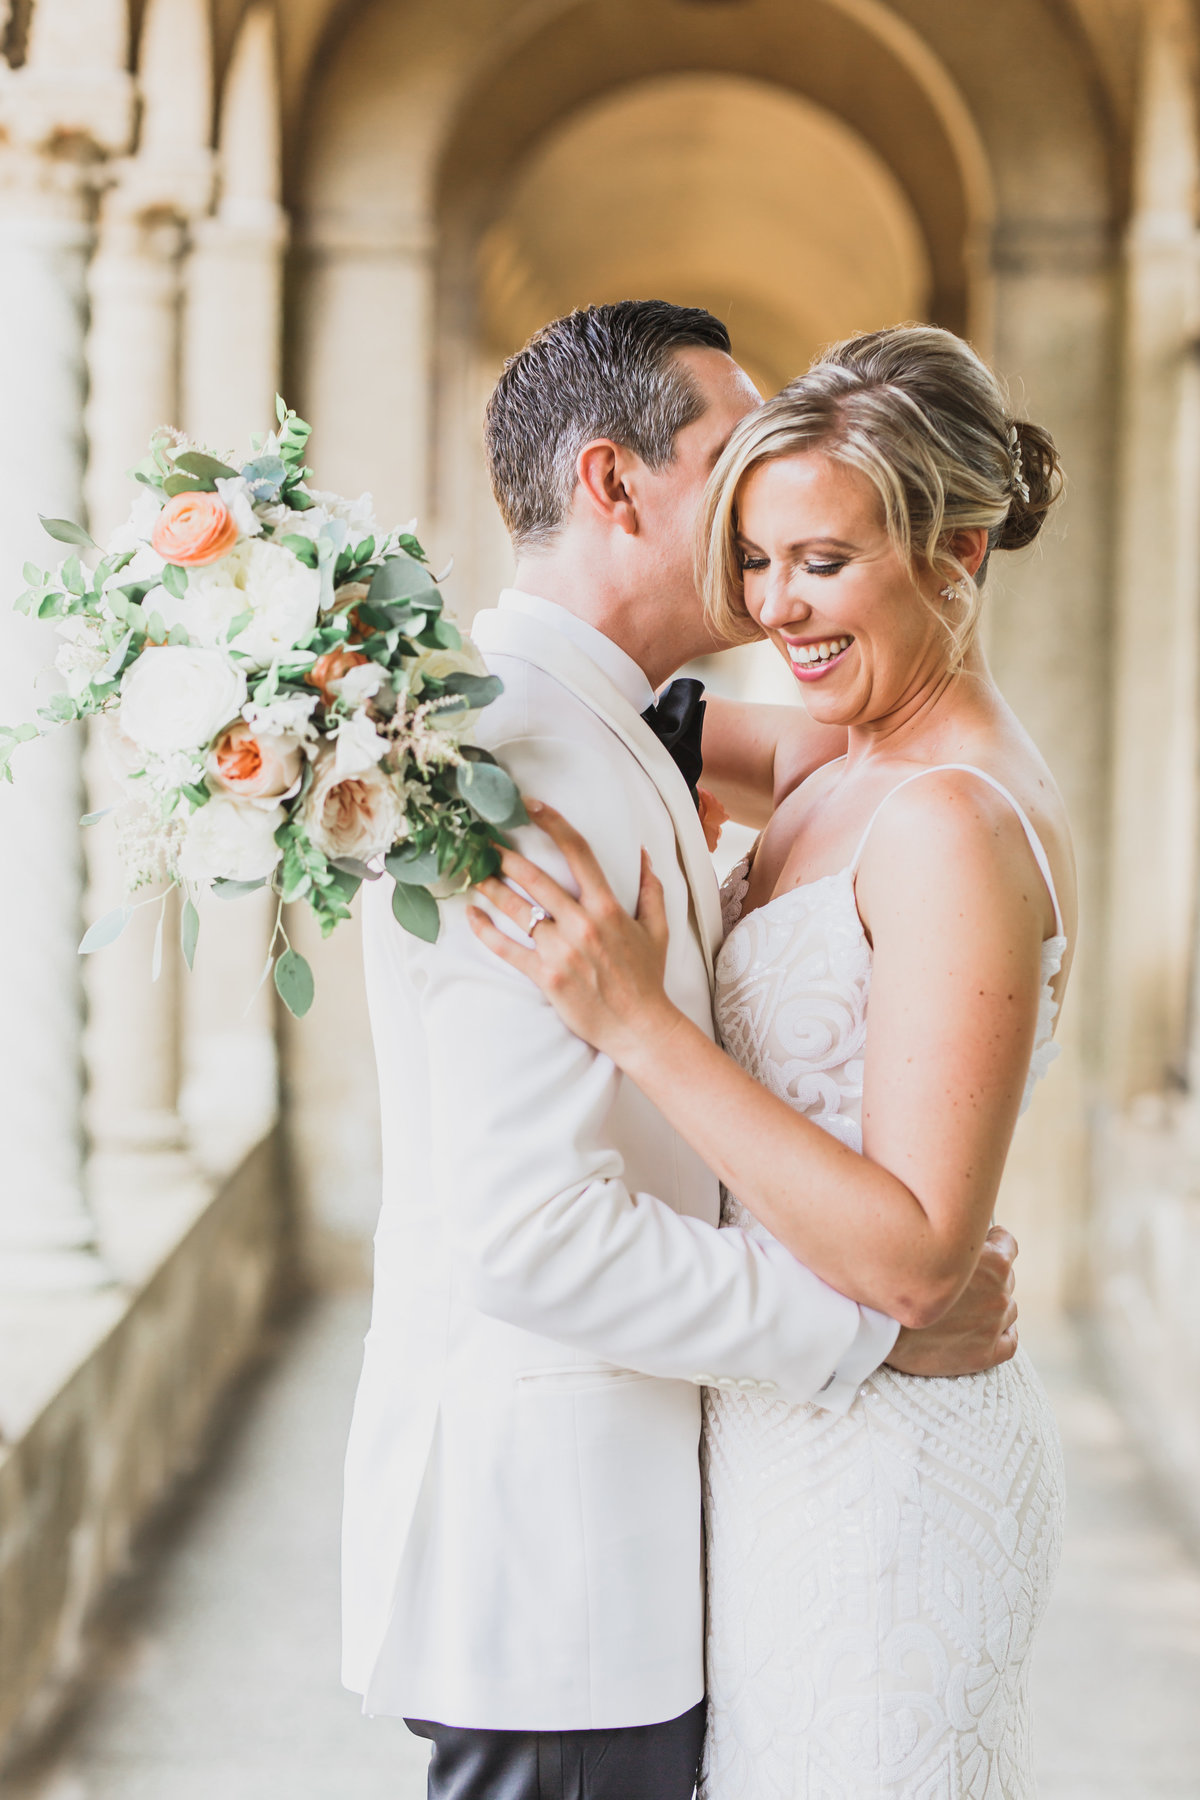 Washington D.C. Wedding Photographer - M Harris Studios-277